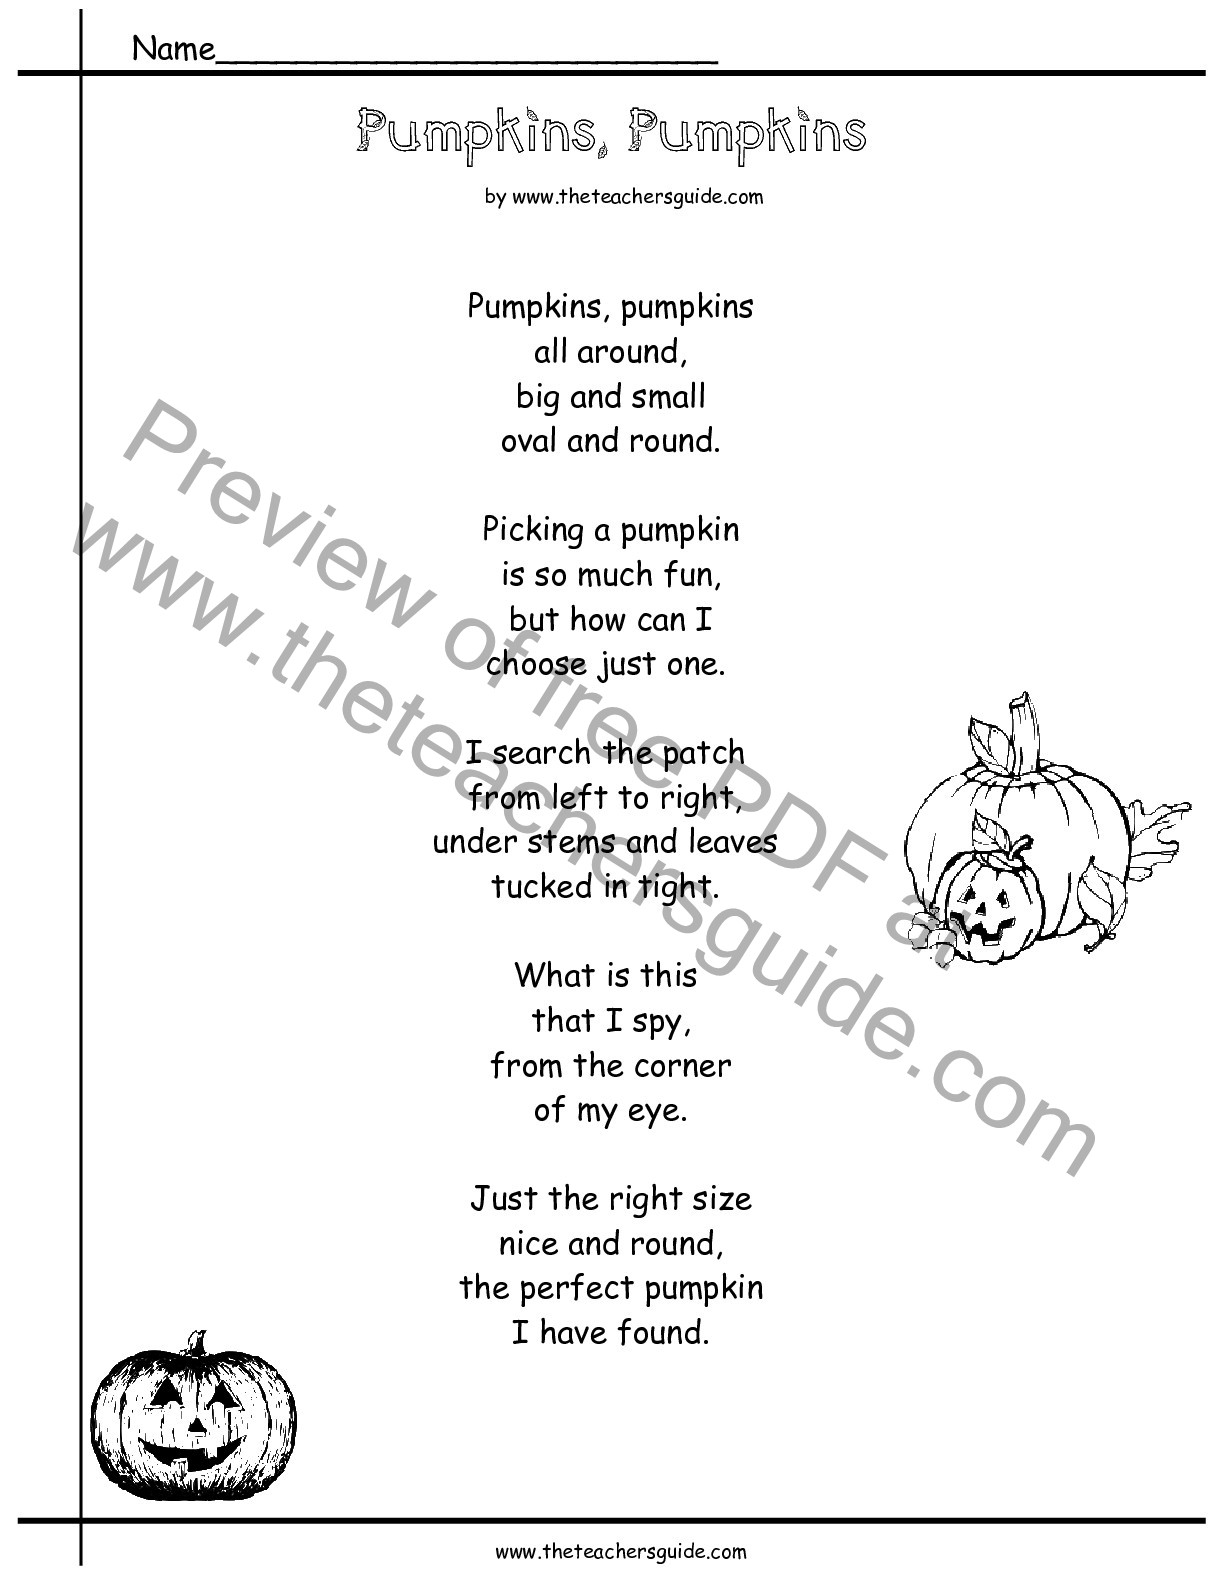 Theme Worksheets 5th Grade Elements Poetry for 3rd Grade theme Worksheets Fun